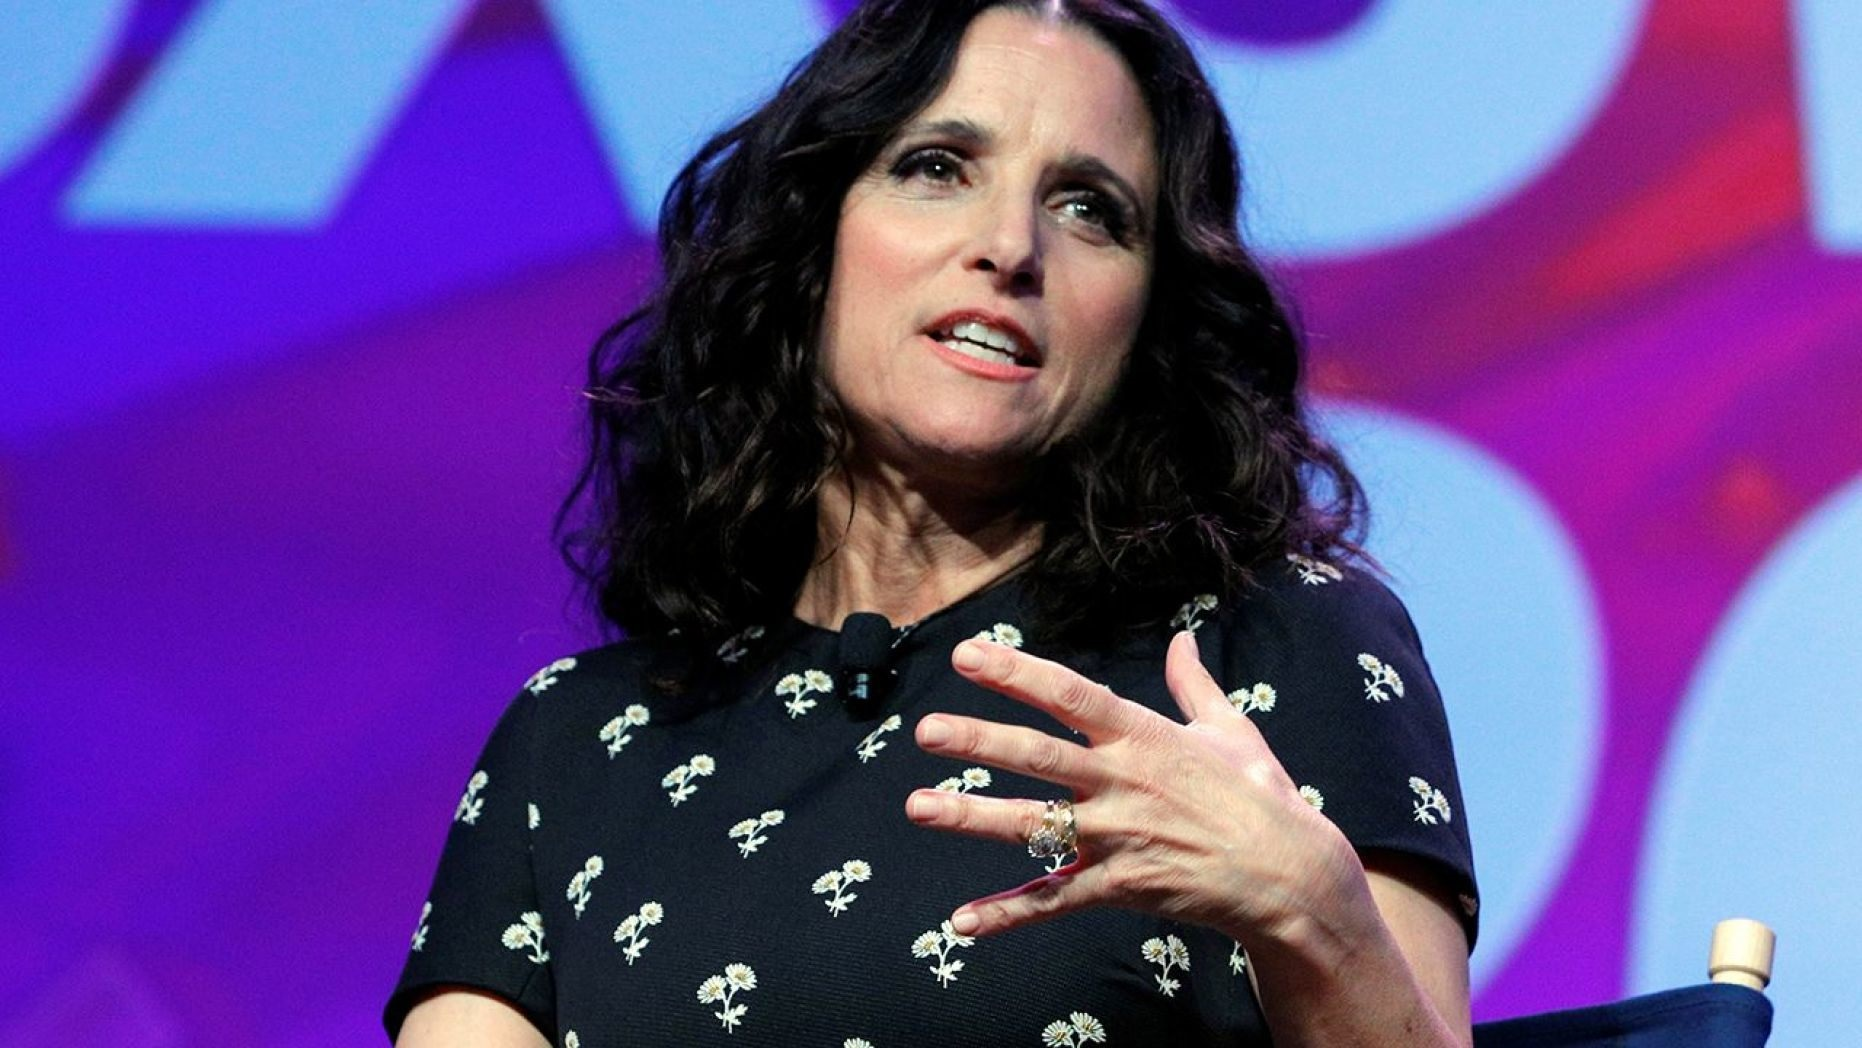 Julia Louis-Dreyfus opens up about her sister's death for first time: 'It was out of the blue'